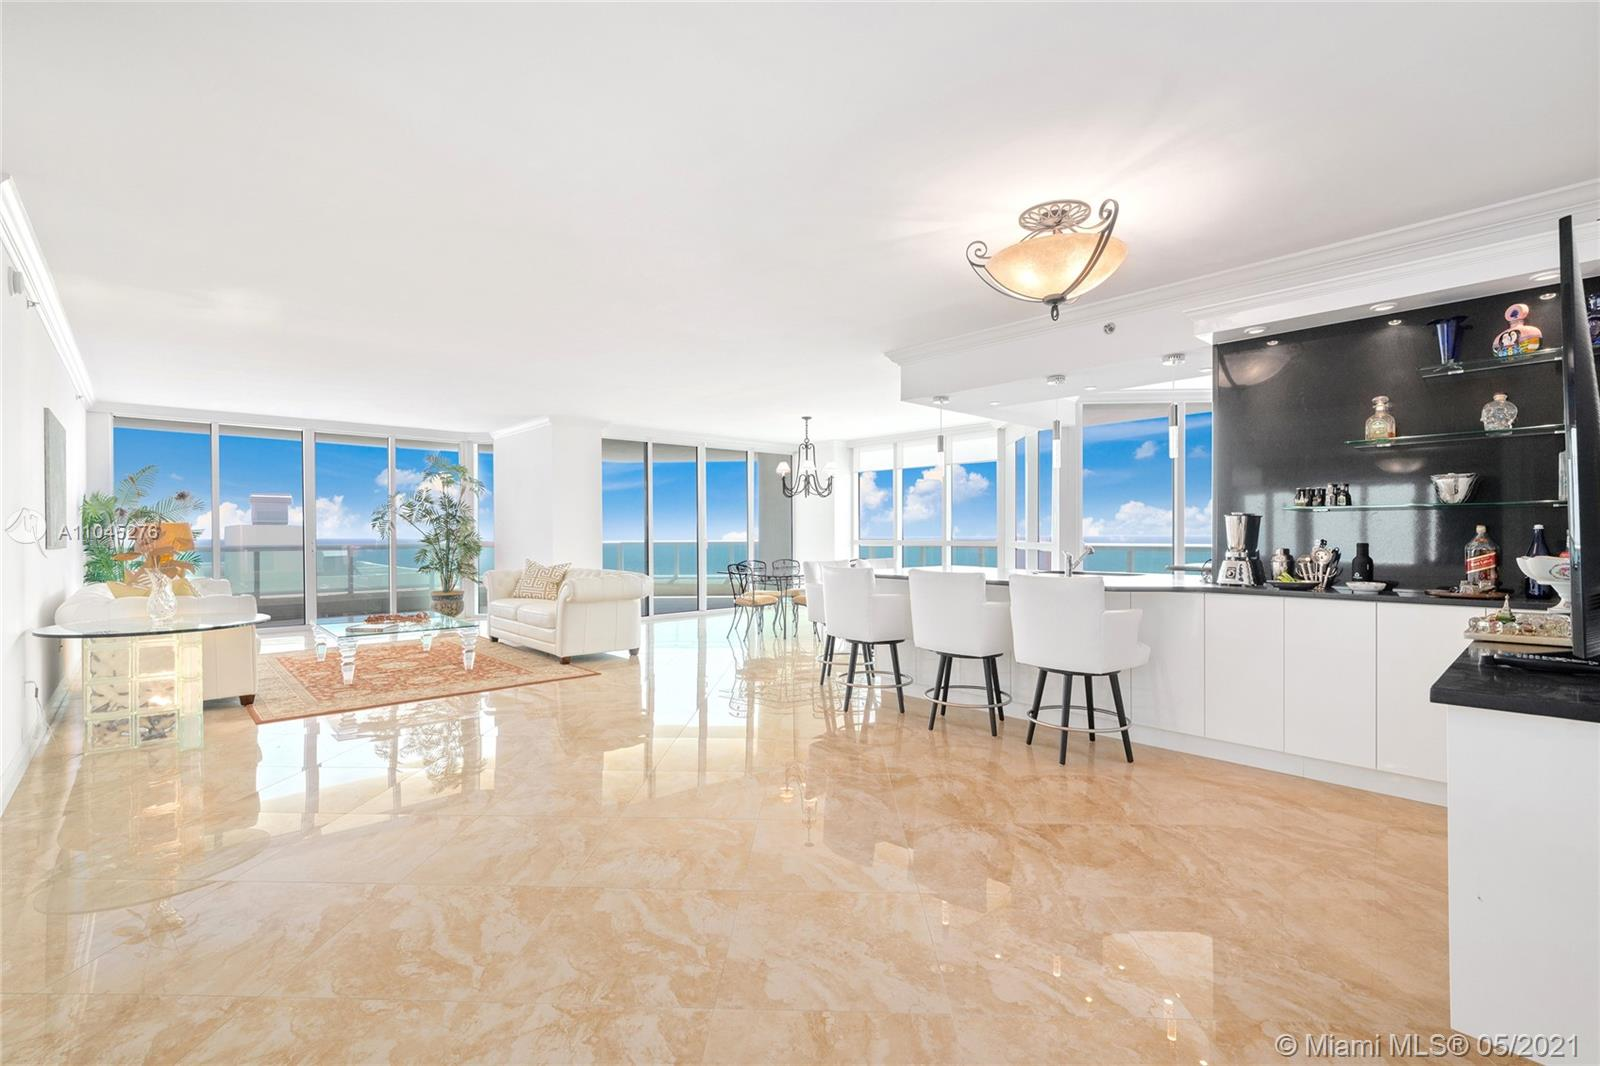 Located in one of the most luxurious oceanfront buildings in Fort Lauderdale, this 2,950 sqft condo in the Las Olas Beach Club defines coastal sophistication. Rise into this 3-bedroom + den, 4-bathroom corner unit via private elevator, and move through the open layout space showcasing direct east and southeast views. Watch sunrise and sunset from the wrap-around terrace with direct ocean, intracoastal and skyline views. Every bedroom also has a water view, with its own full bathroom and walk-in closet. The master bedroom has two walk-in closets and a master bath with a full bathtub, double sinks and a walk in shower. The kitchen has Miele and Subzero appliances. Building amenities include three hot tubs, infinity pool, spa, full gym and much more!